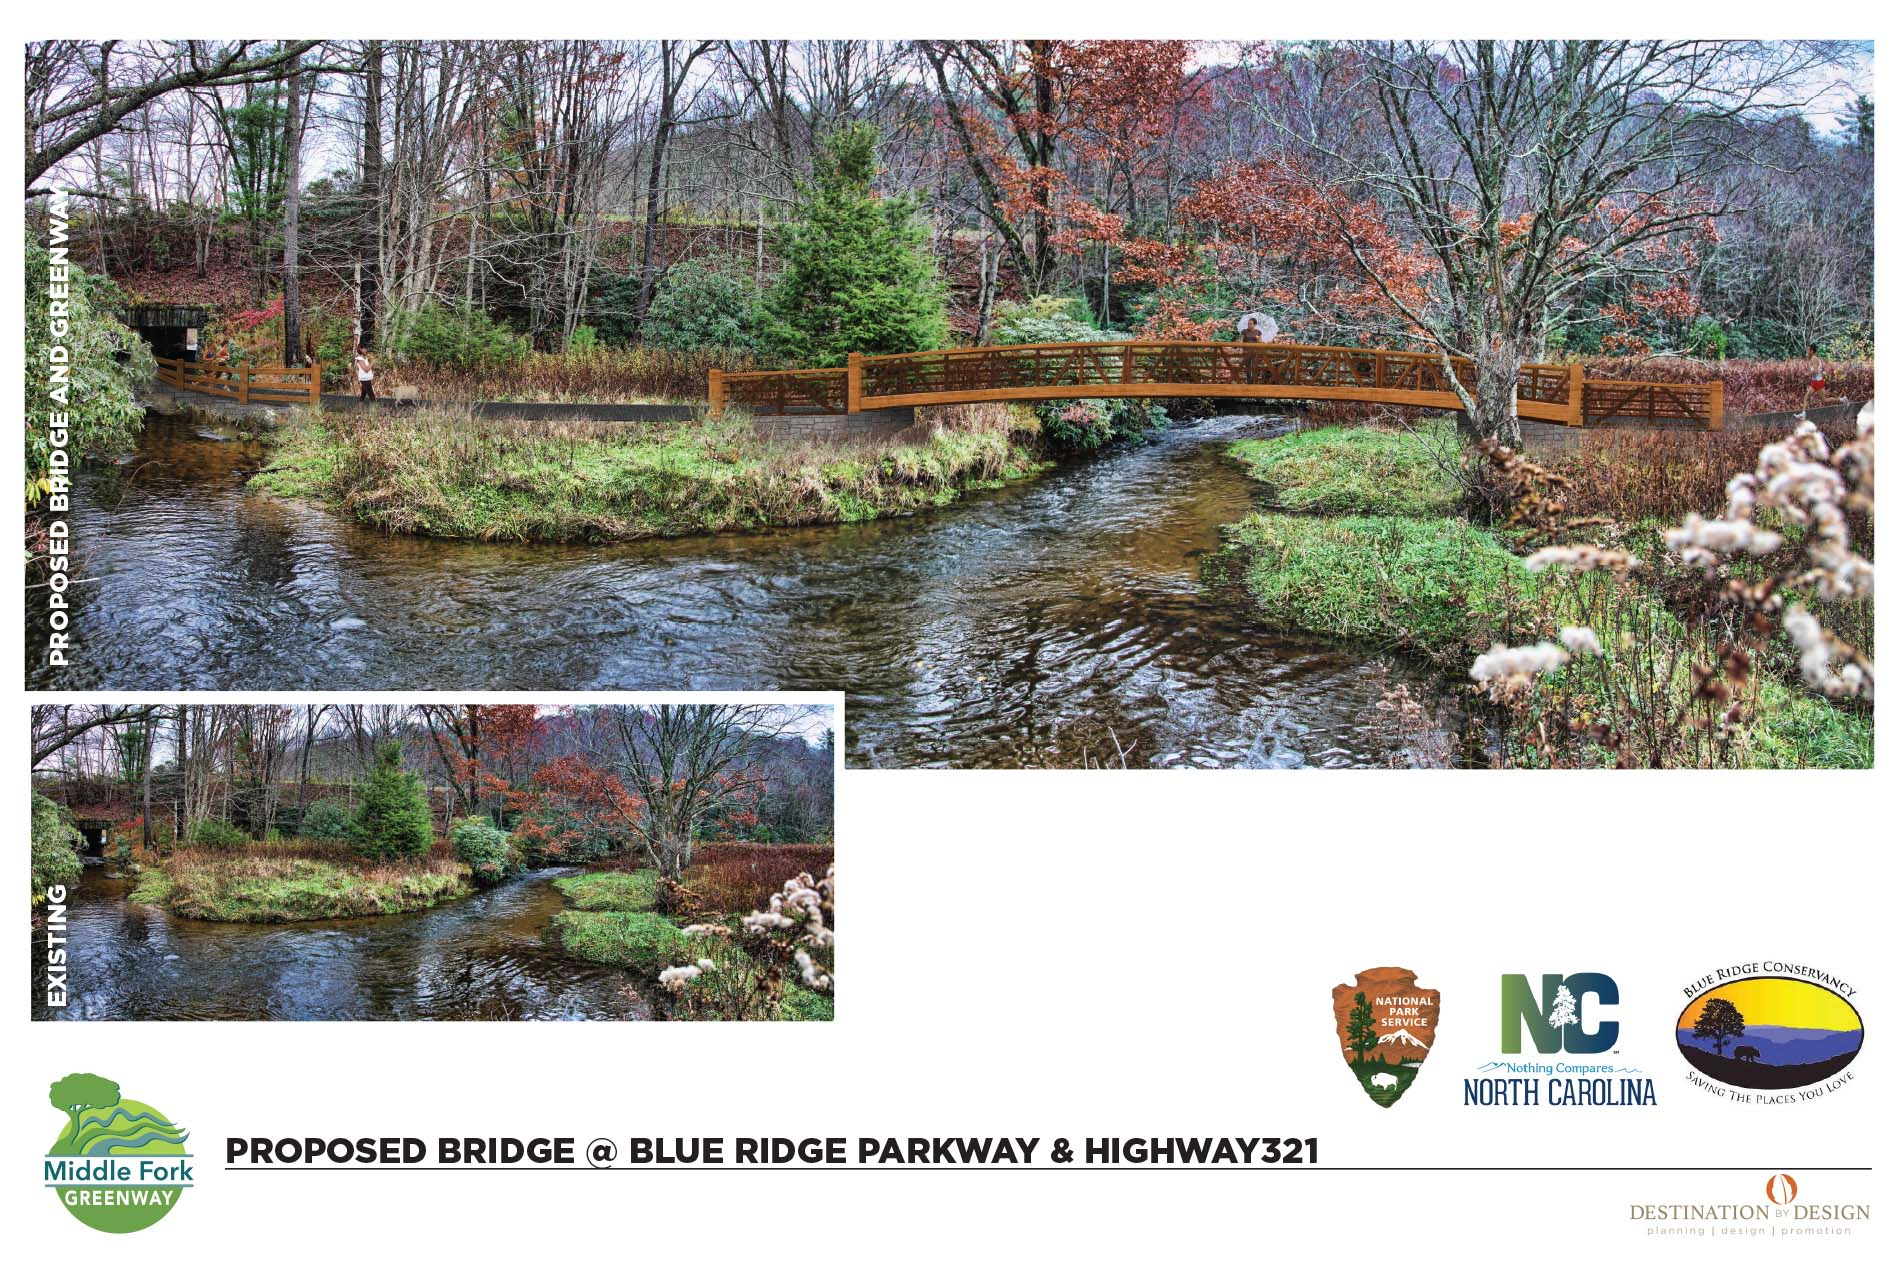 destination by design proposed bridge at blue ridge parkway and highway 321. Wooden bridge crossing a river and then going into a tunnel